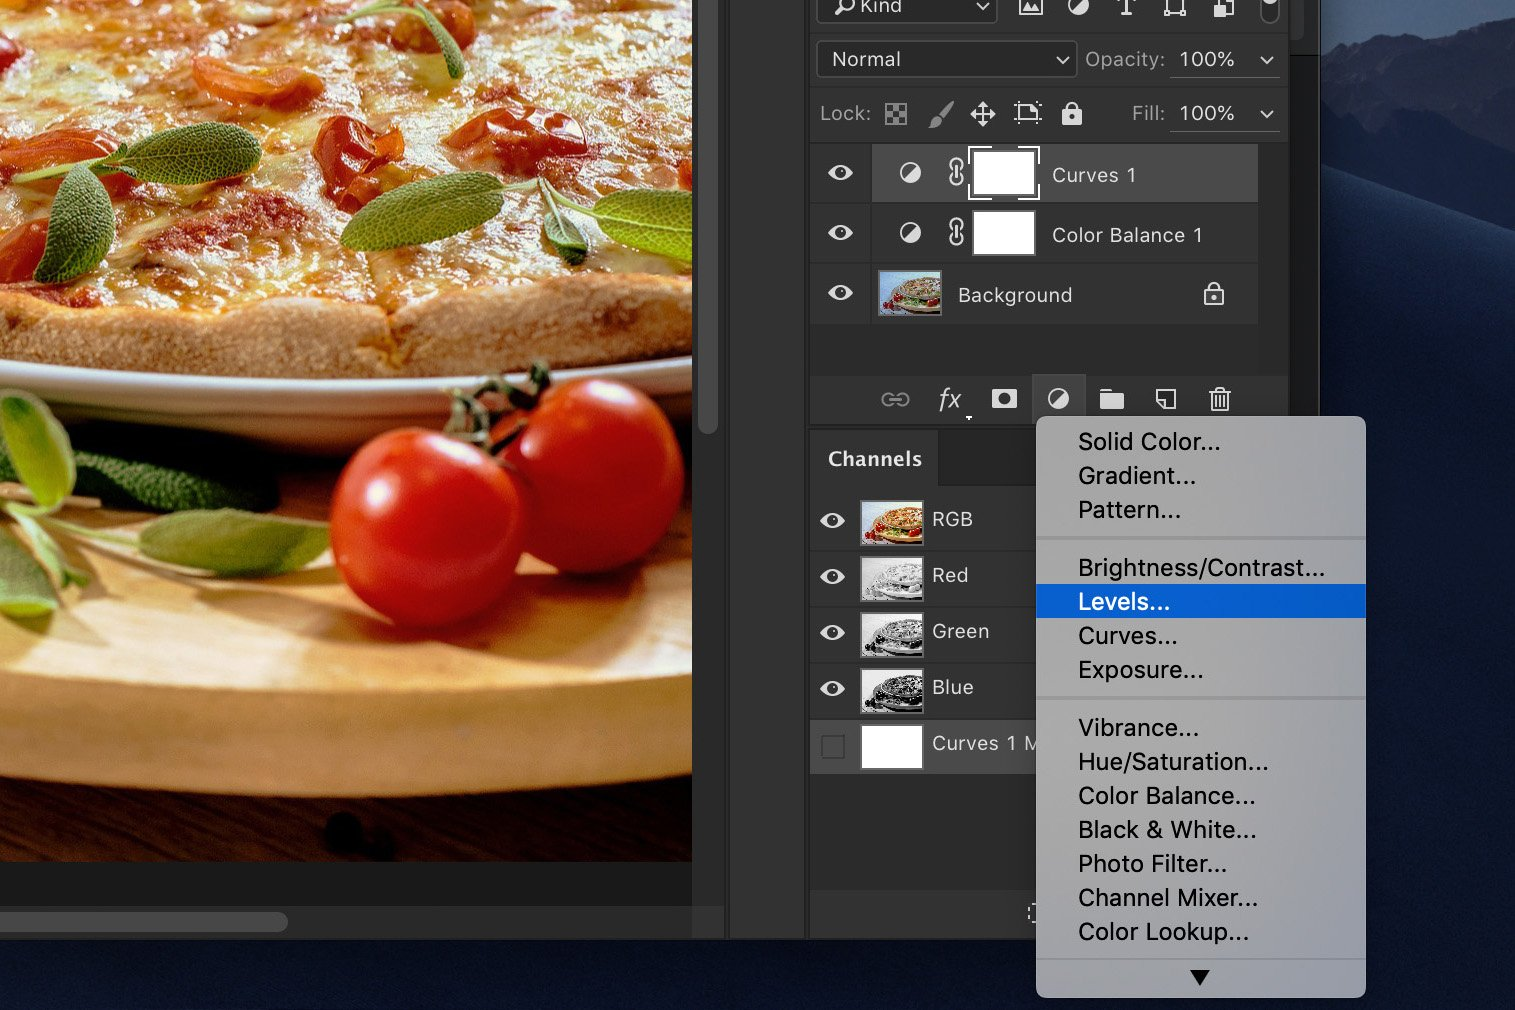 A screenshot showing how to edit food photography in Photoshop - lift the highlights